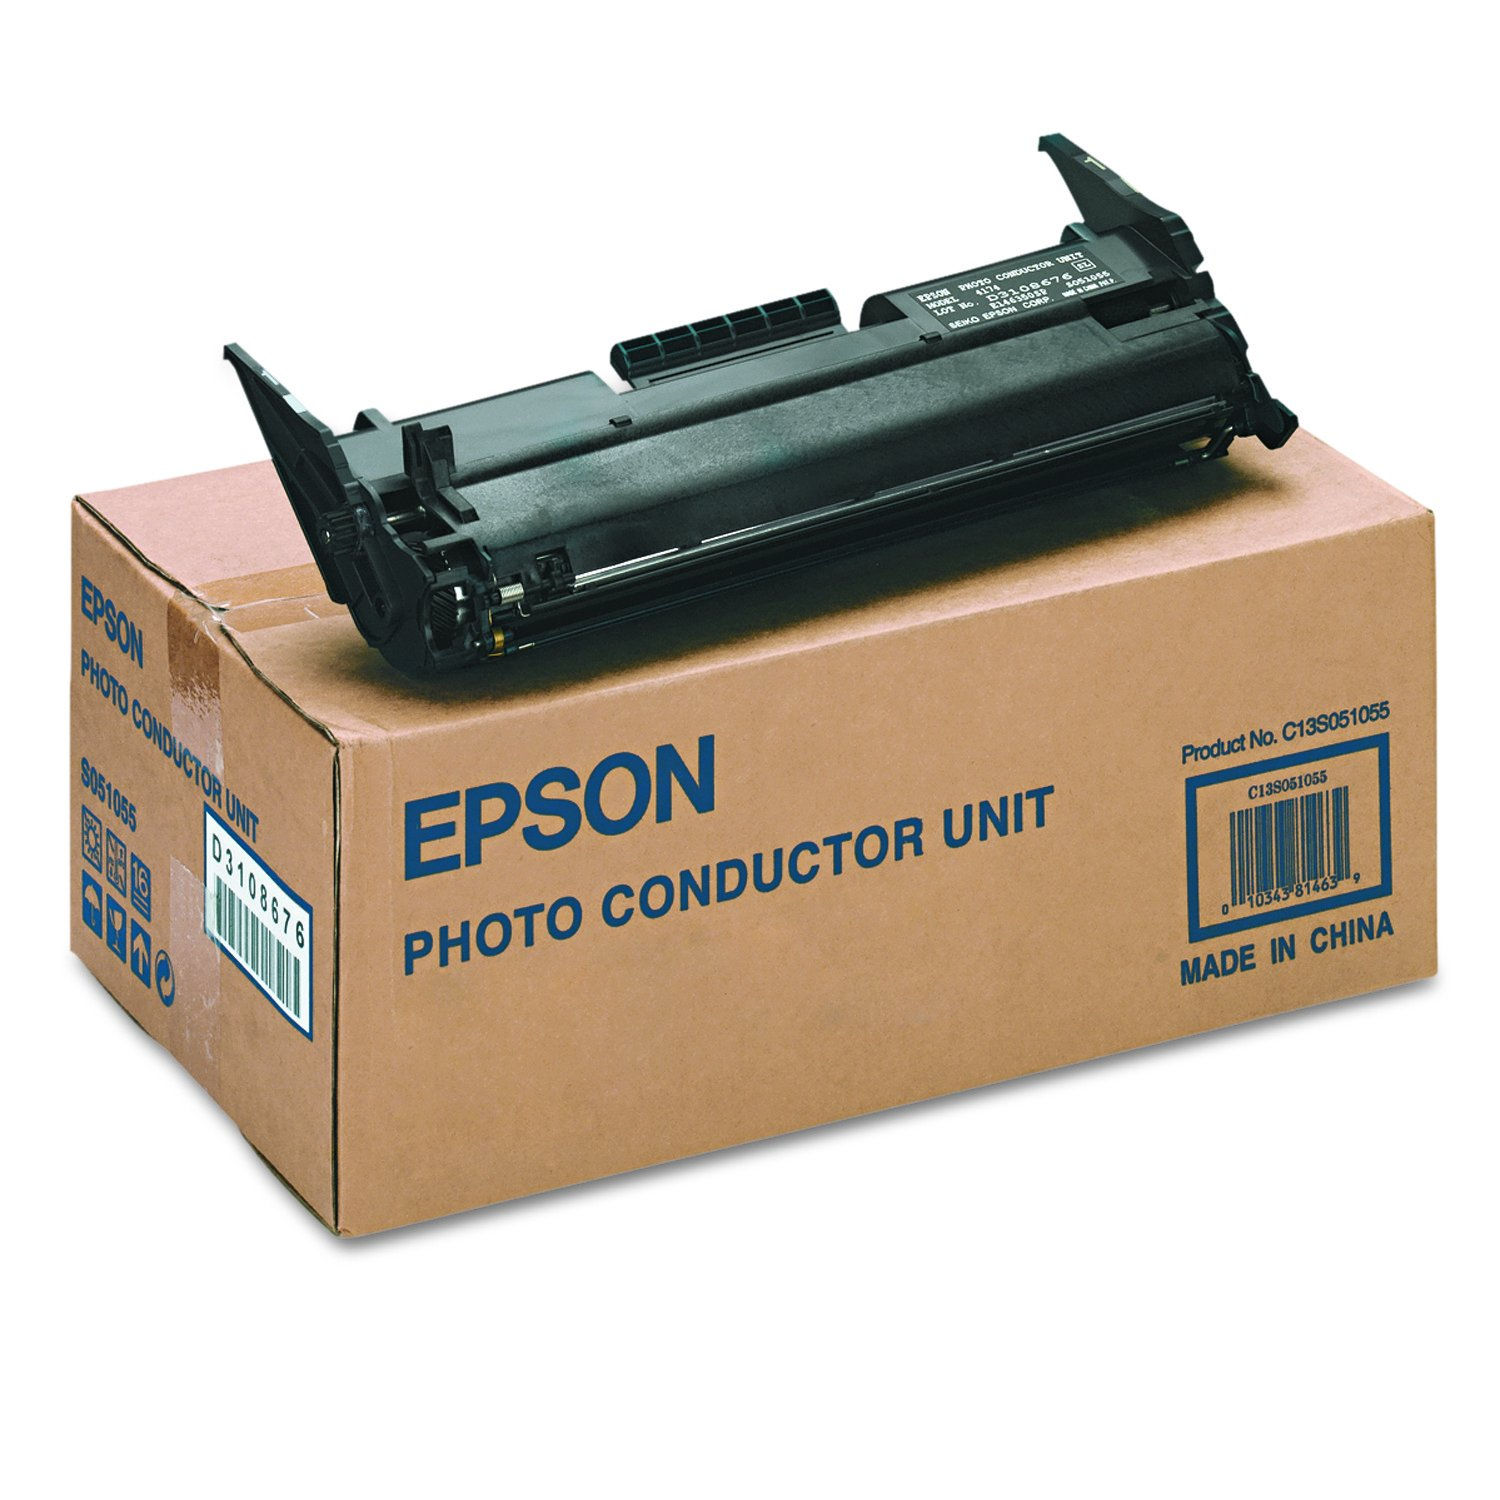 Epson Photoconductor Unit S051104 by Epson